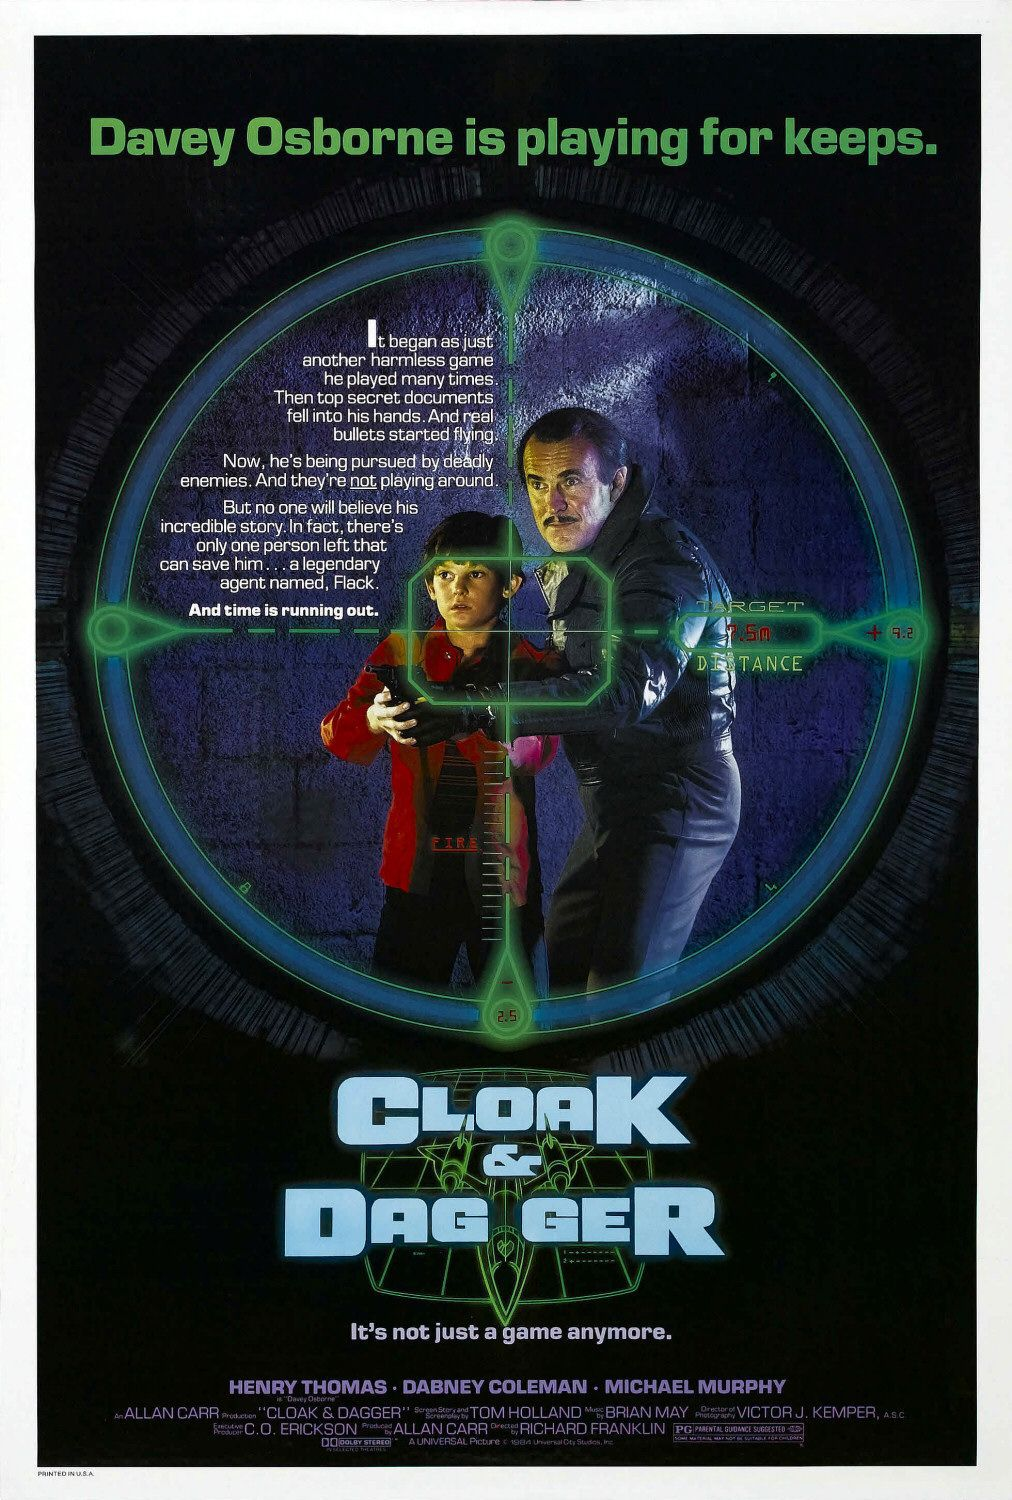 Cloak and Dagger 1984 - Henry Thomas - Dabney Coleman - Michael Murphy - Christina Nigra - film poster